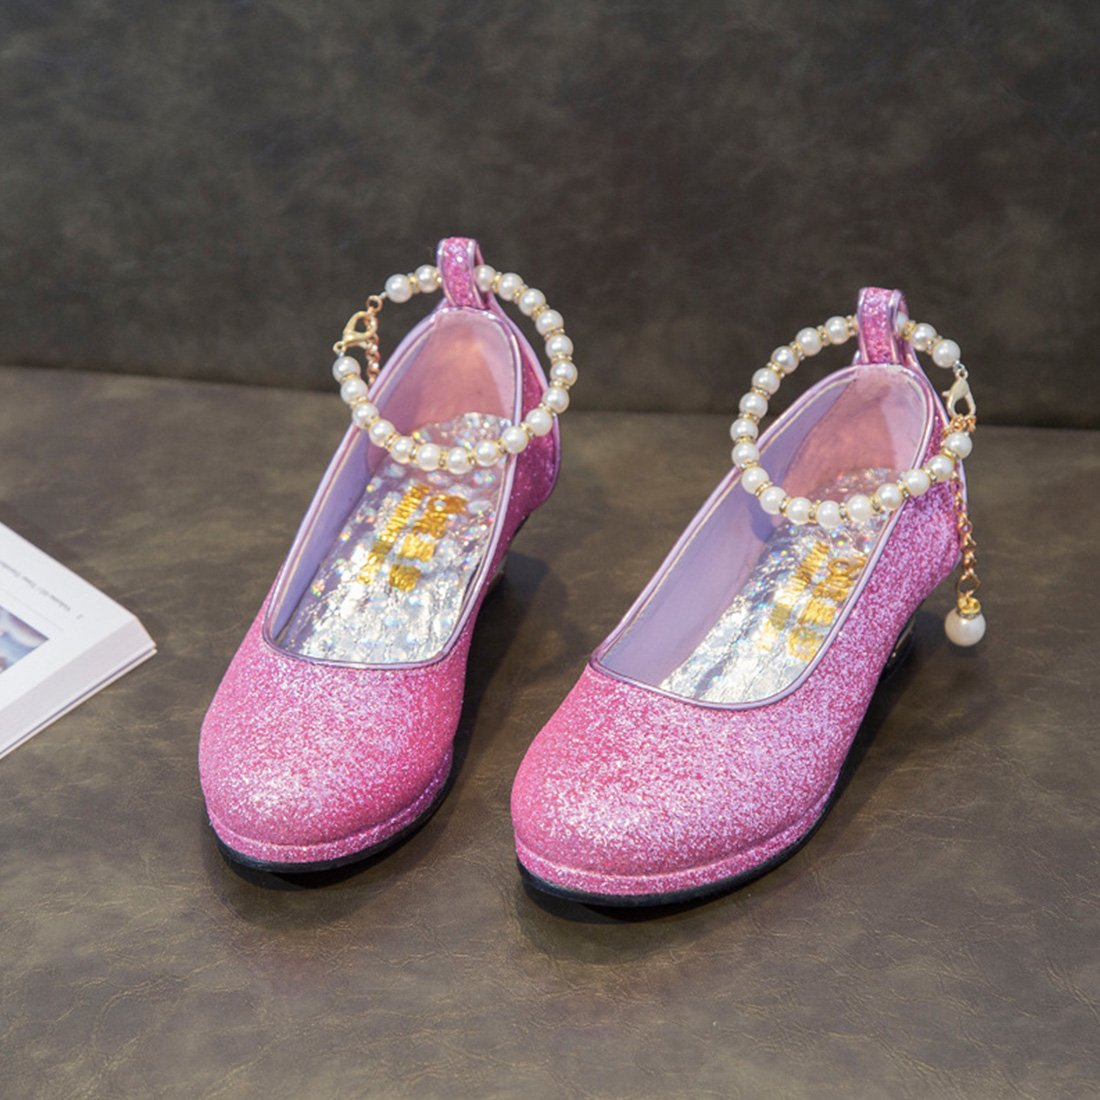 YIBLBOX Girls Kids Toddler Dress up Cosplay Princess Wedding Shoes Sequin Mary Jane Low Heel Shoes by YIBLBOX (Image #2)